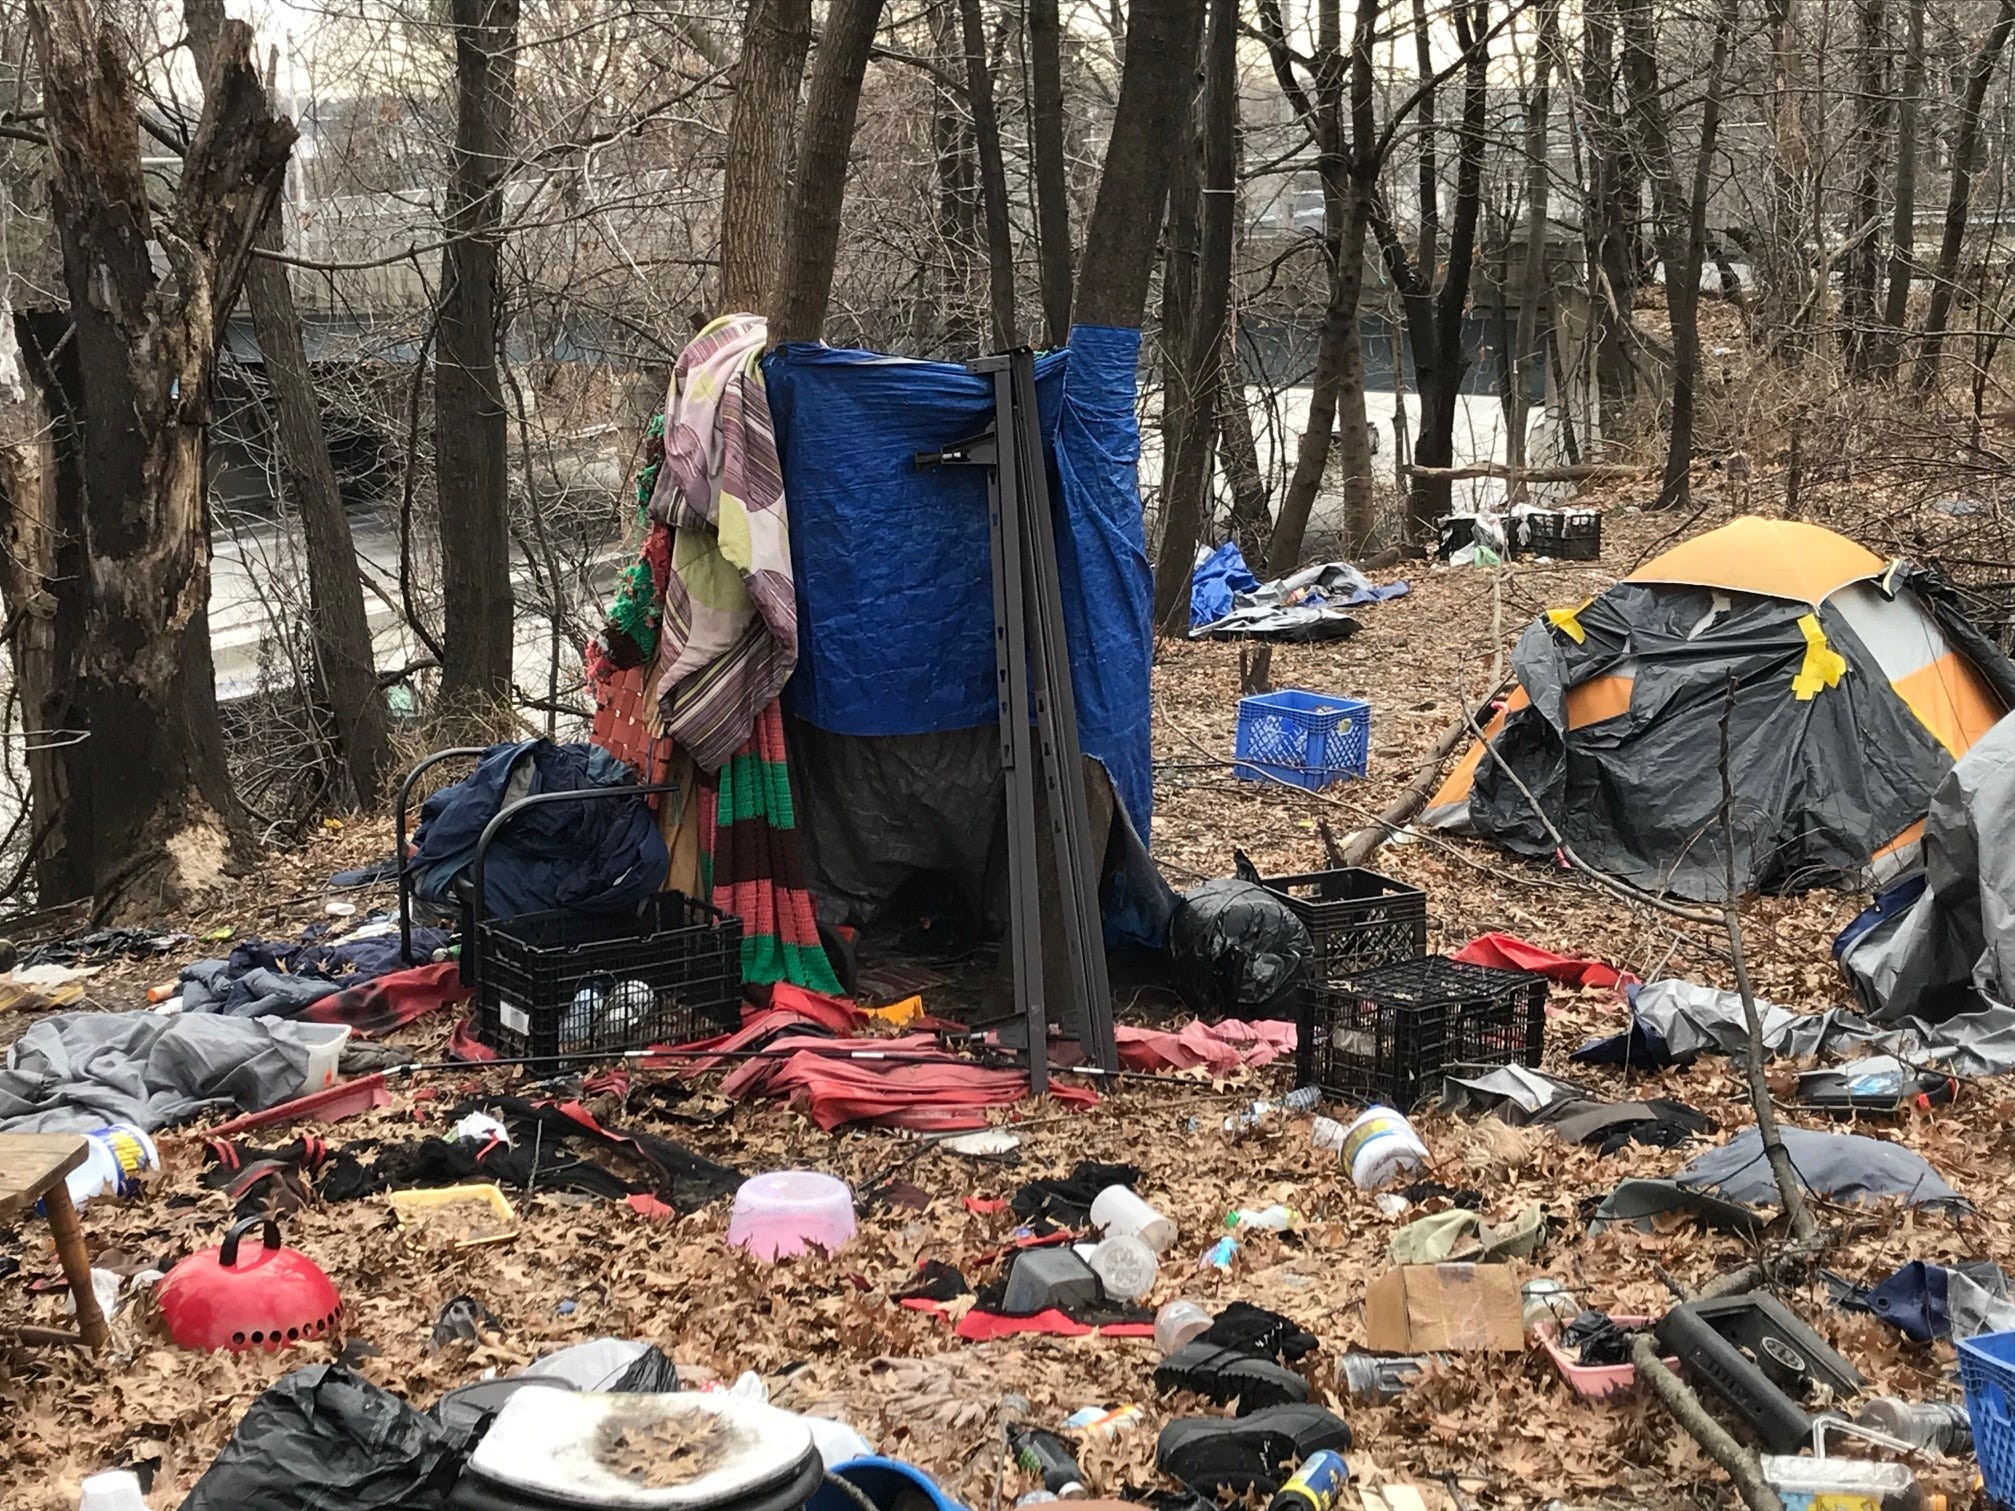 The remains of homeless encampment in city of Passaic between Route 21 and Veteran's Park. The state of NJ owns land and have put in a fence which acts as deterent. There's still one tent there.